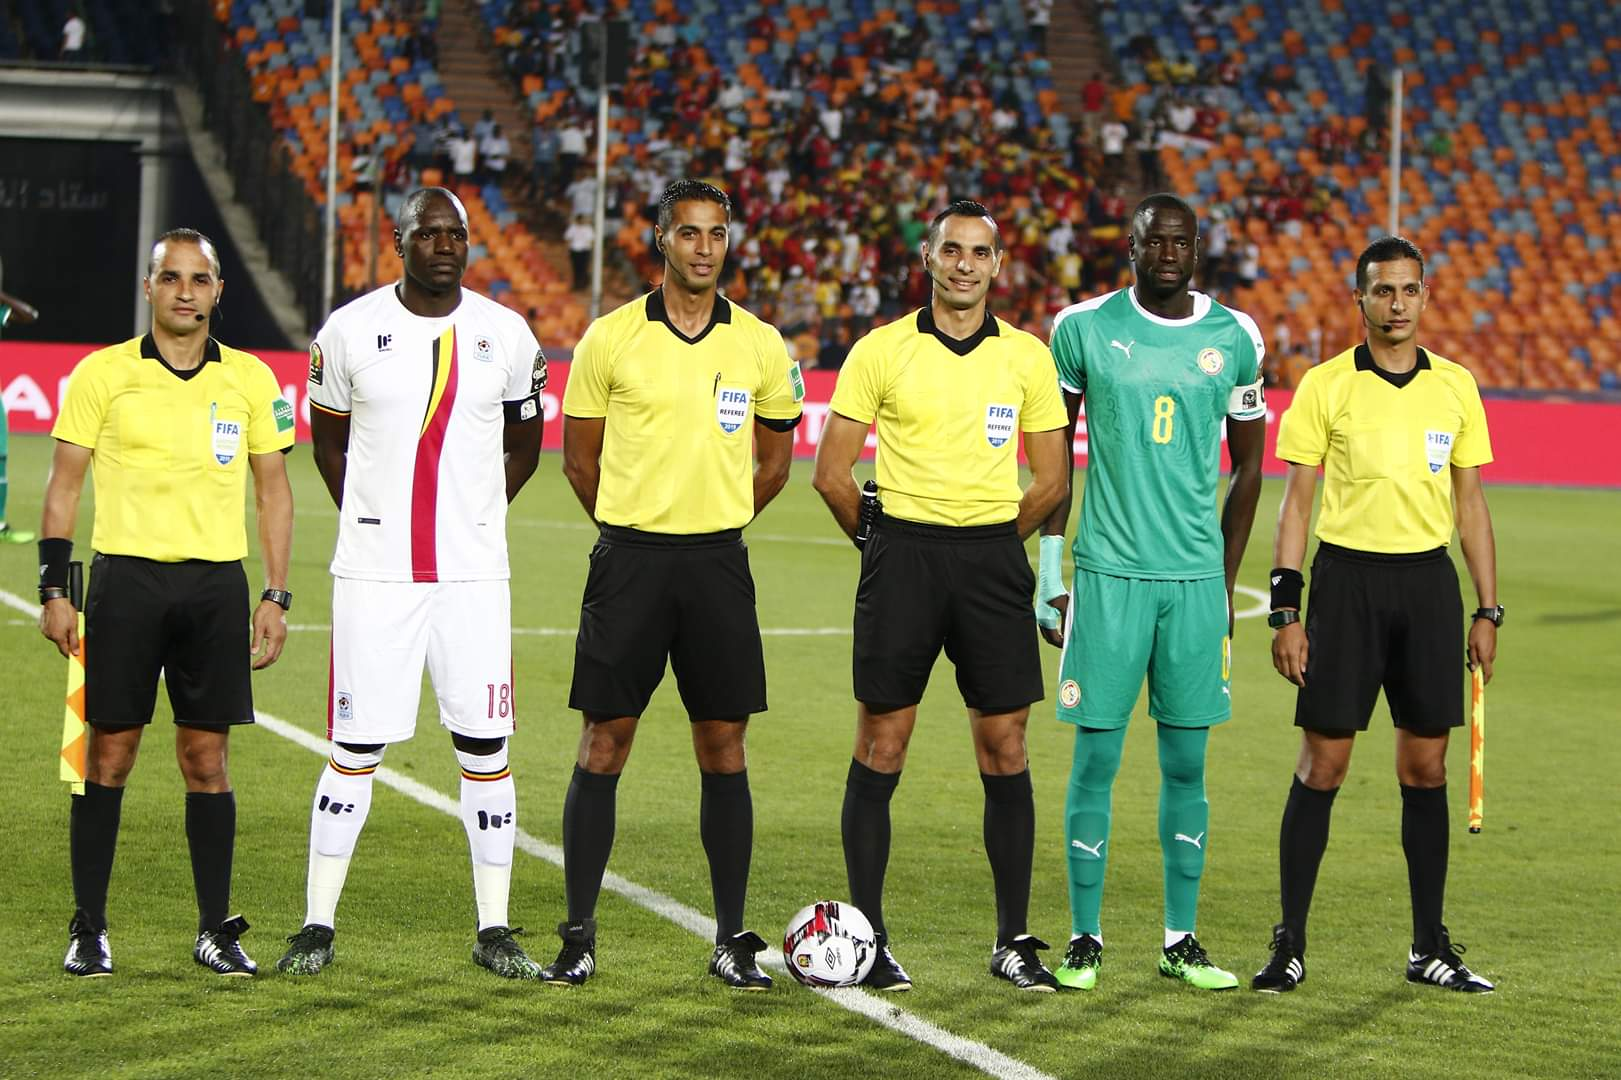 The two team captains line up alonside the referees before kick off on Friday.